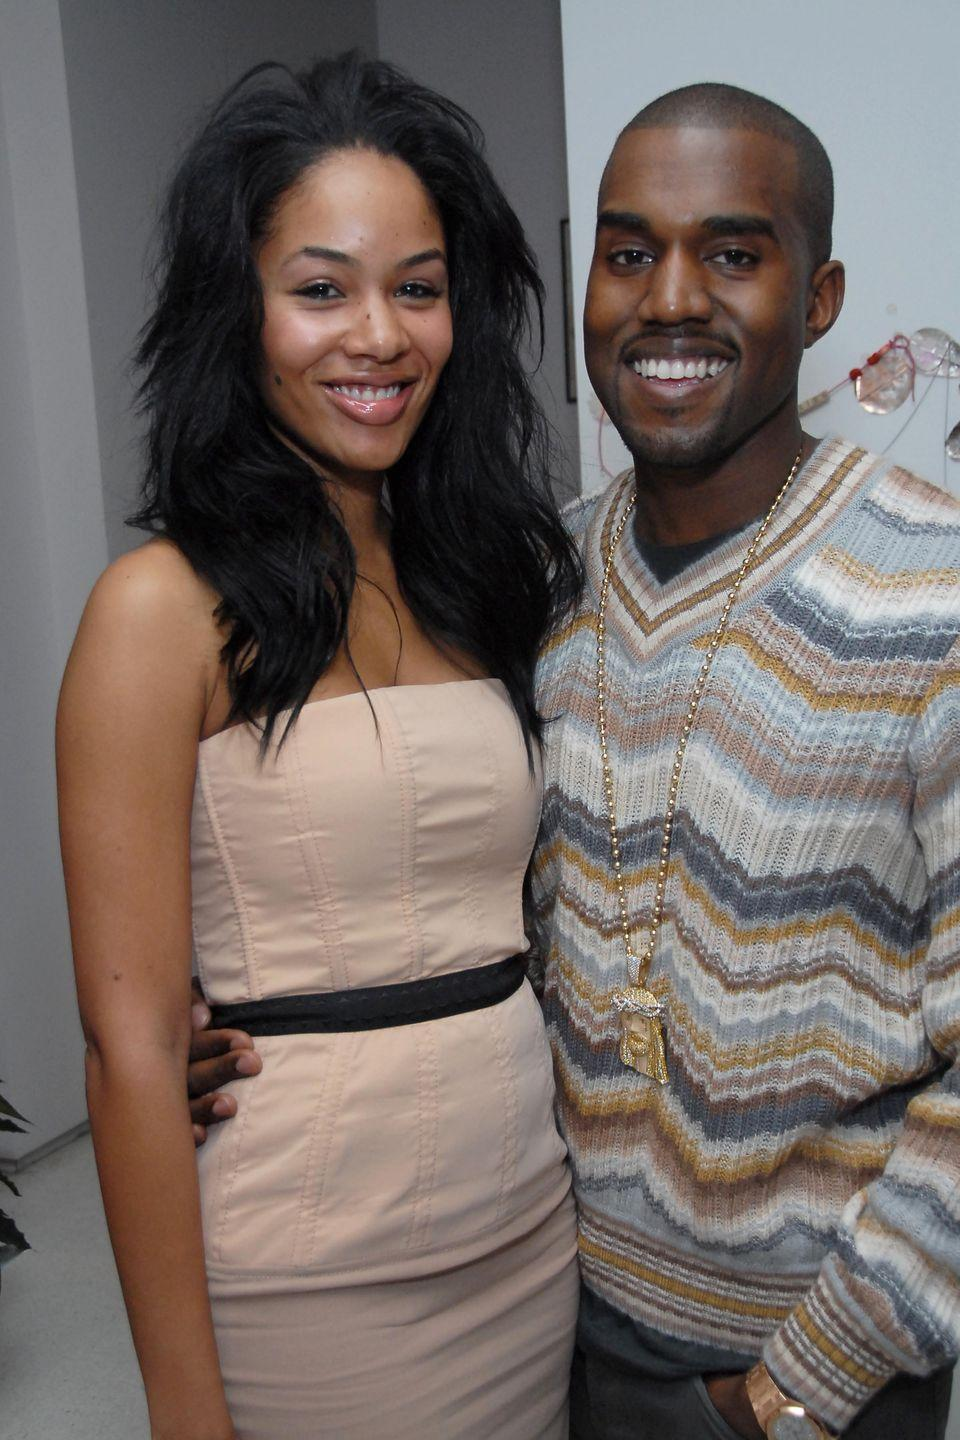 """<p>Before marrying Kim Kardashian, Kanye West dated the fashion designer on-and-off since 2002 before <a href=""""http://people.com/celebrity/kanye-wests-fiance-sad-over-breakup/"""" rel=""""nofollow noopener"""" target=""""_blank"""" data-ylk=""""slk:getting engaged over a lobster and pasta dinner"""" class=""""link rapid-noclick-resp"""">getting engaged over a lobster and pasta dinner</a> in Capri in August 2006. They announced their separation two years later. """"It's always sad when things like this end, and we remain friends,"""" Phifer told <a href=""""http://people.com/celebrity/kanye-wests-fiance-sad-over-breakup/"""" rel=""""nofollow noopener"""" target=""""_blank"""" data-ylk=""""slk:People"""" class=""""link rapid-noclick-resp""""><em>People</em></a>. """"I wish him the best in his future and all of his endeavors. He's one of the most talented people I've ever met.""""</p>"""